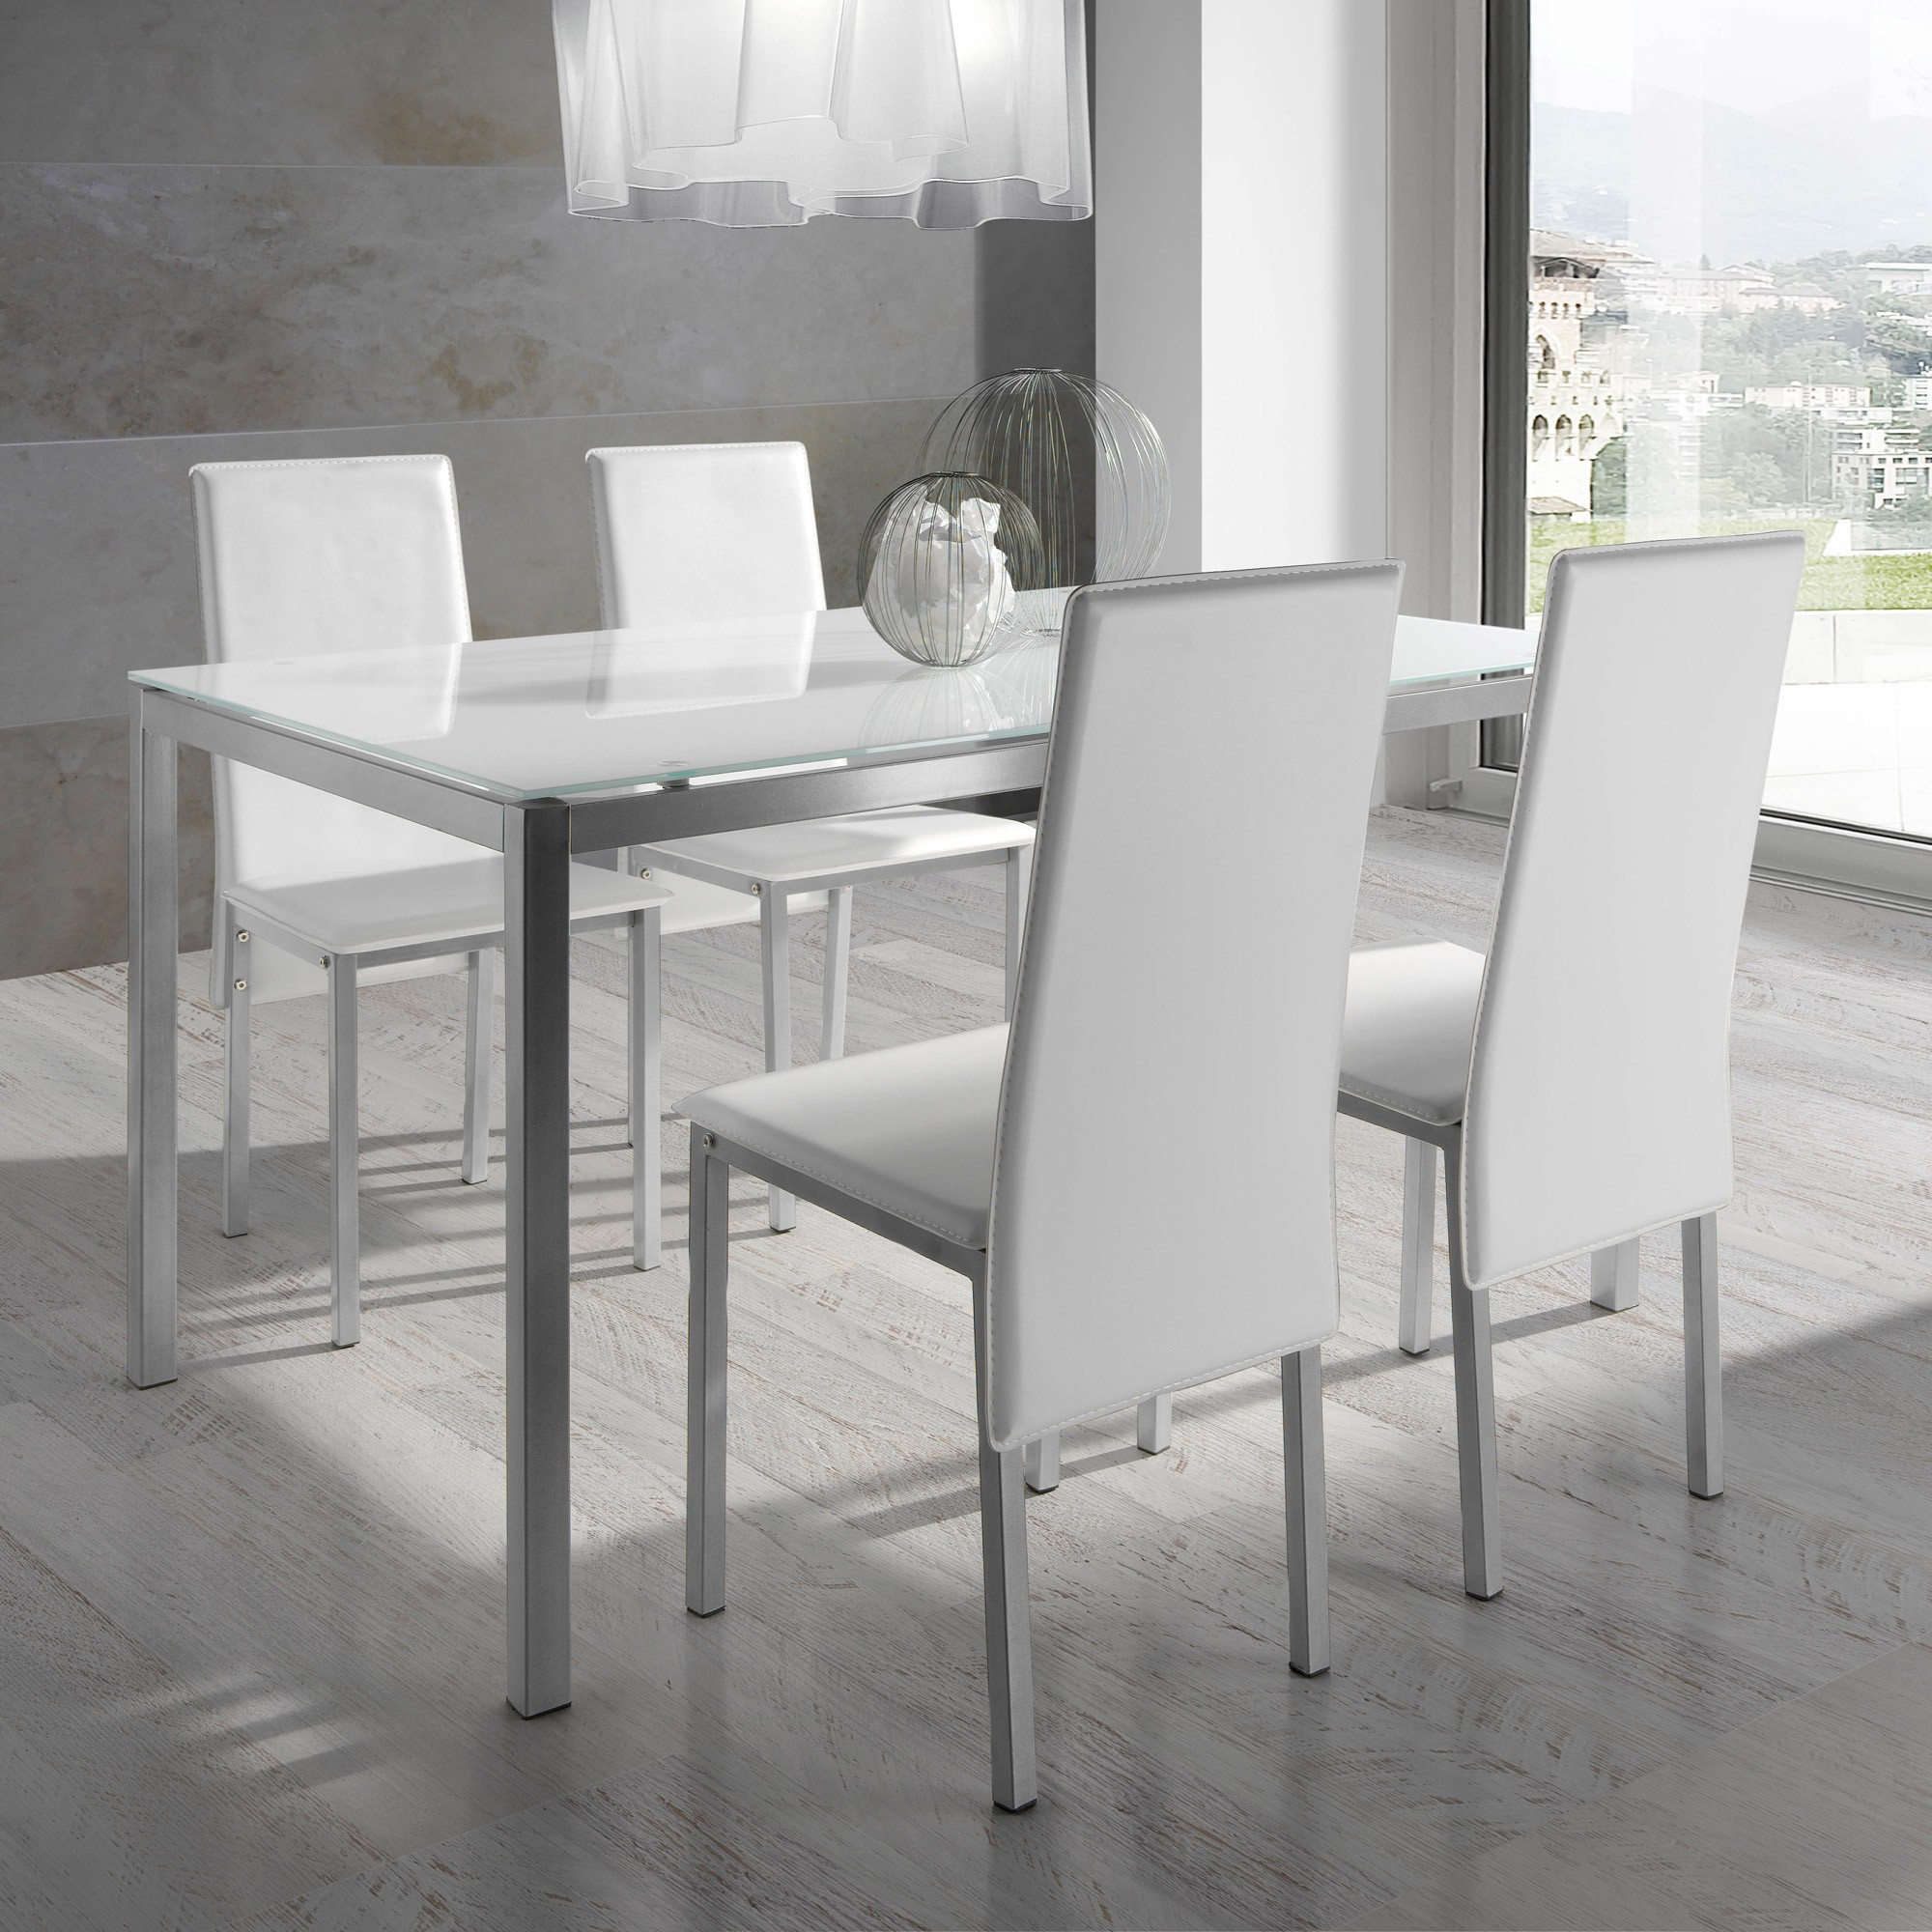 Ensemble table et chaise salle a manger but chaise for Chaise de salle a manger moderne design